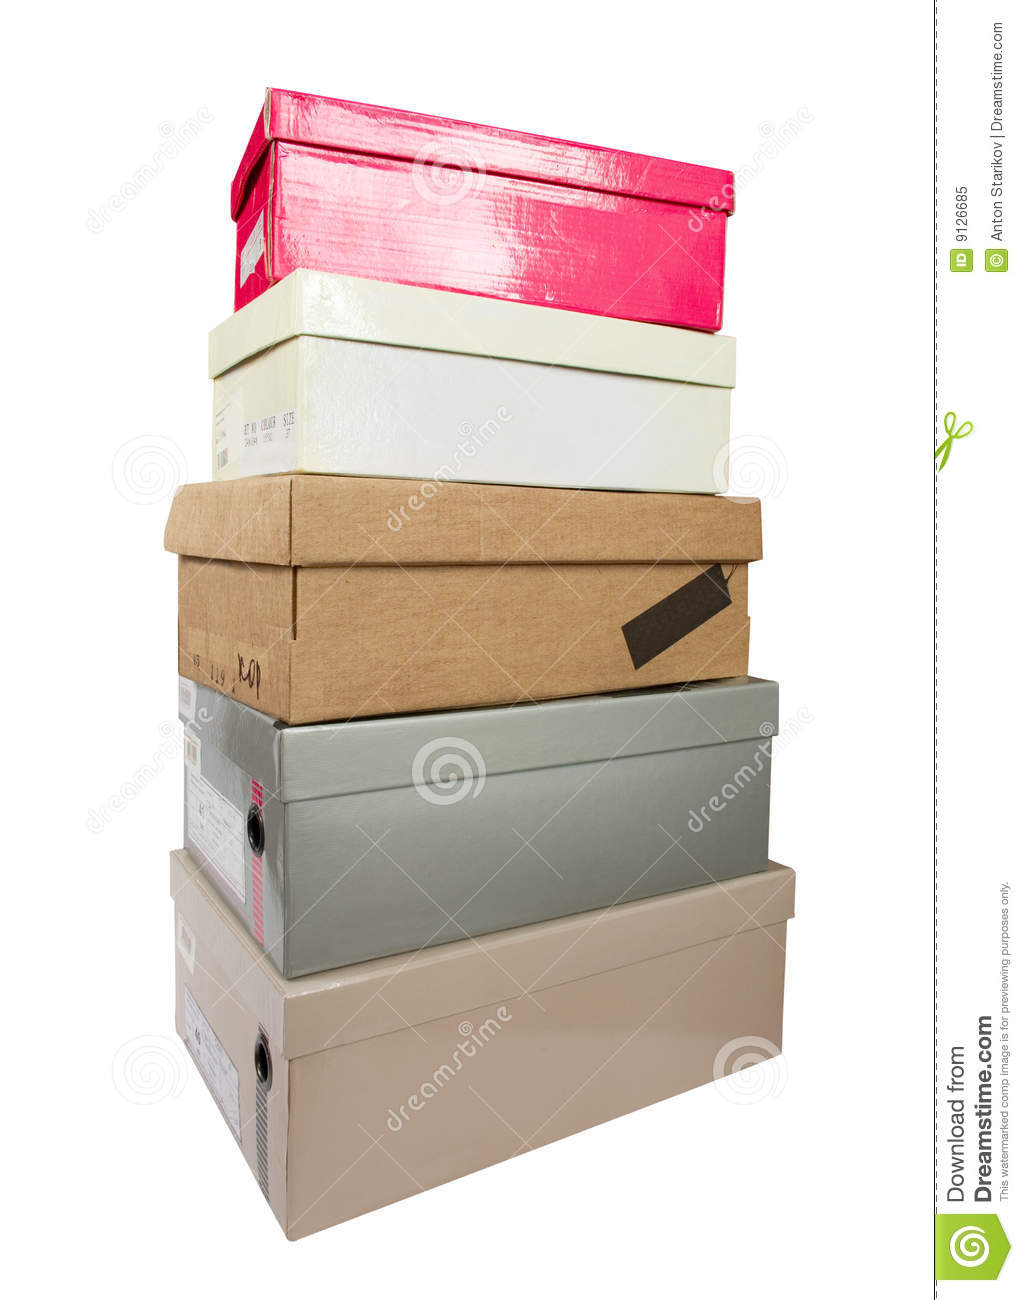 Pile of boxes royalty free stock photo image